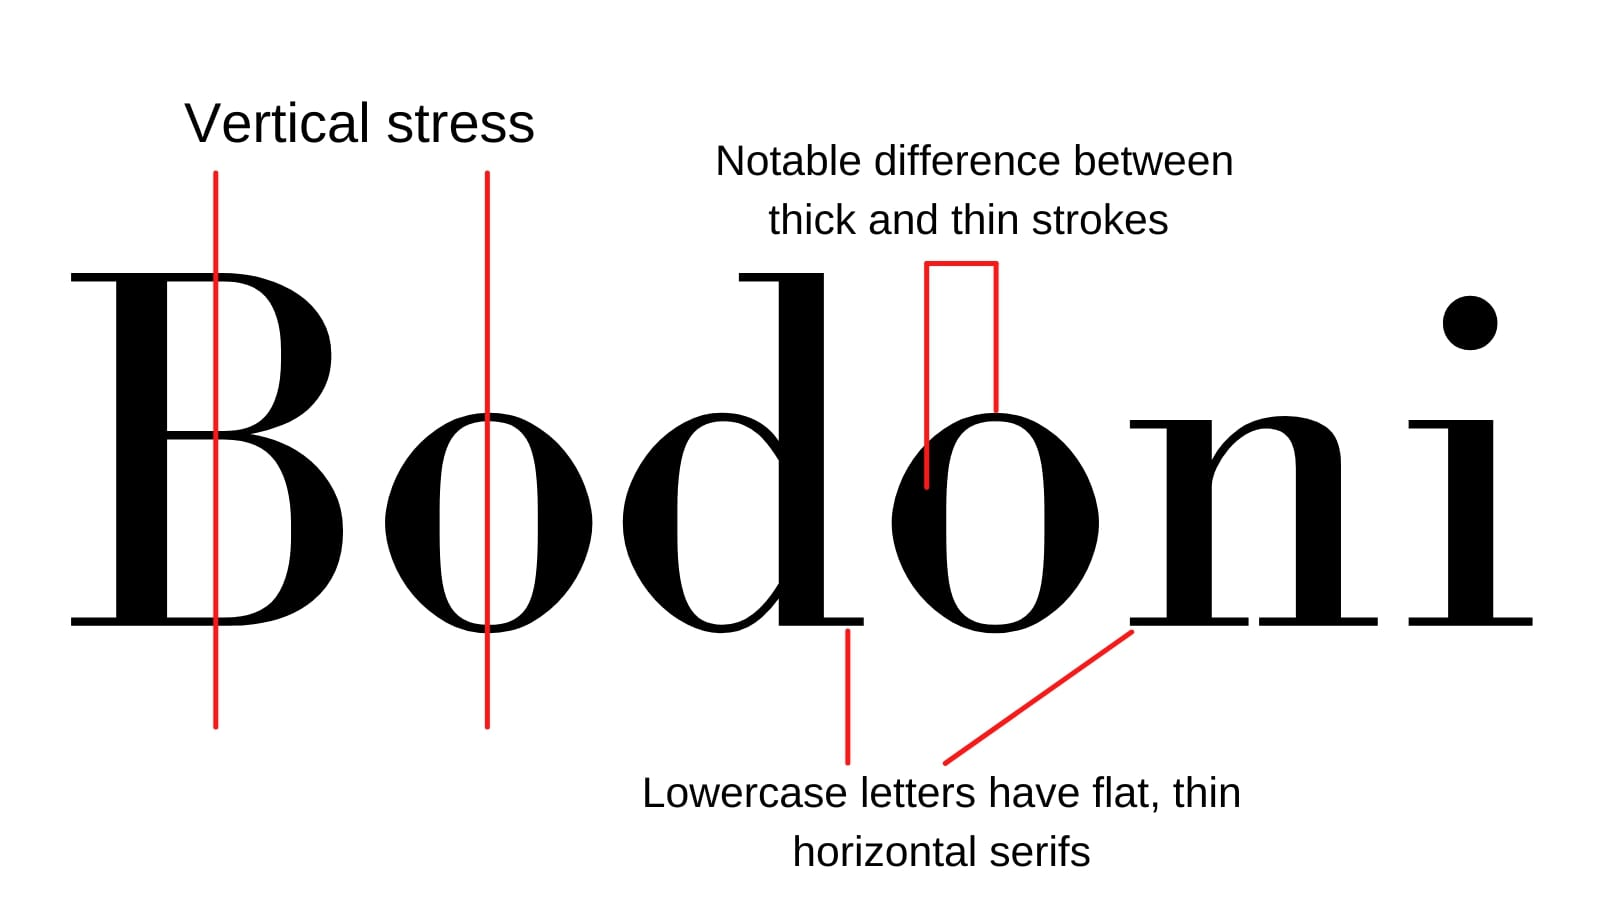 """Image showing the word """"Bodoni"""" in bodoni font. Markers note the vertical stress of the letterforms, the difference between thick and thin strokes, and ligatures on the lowercase letters."""